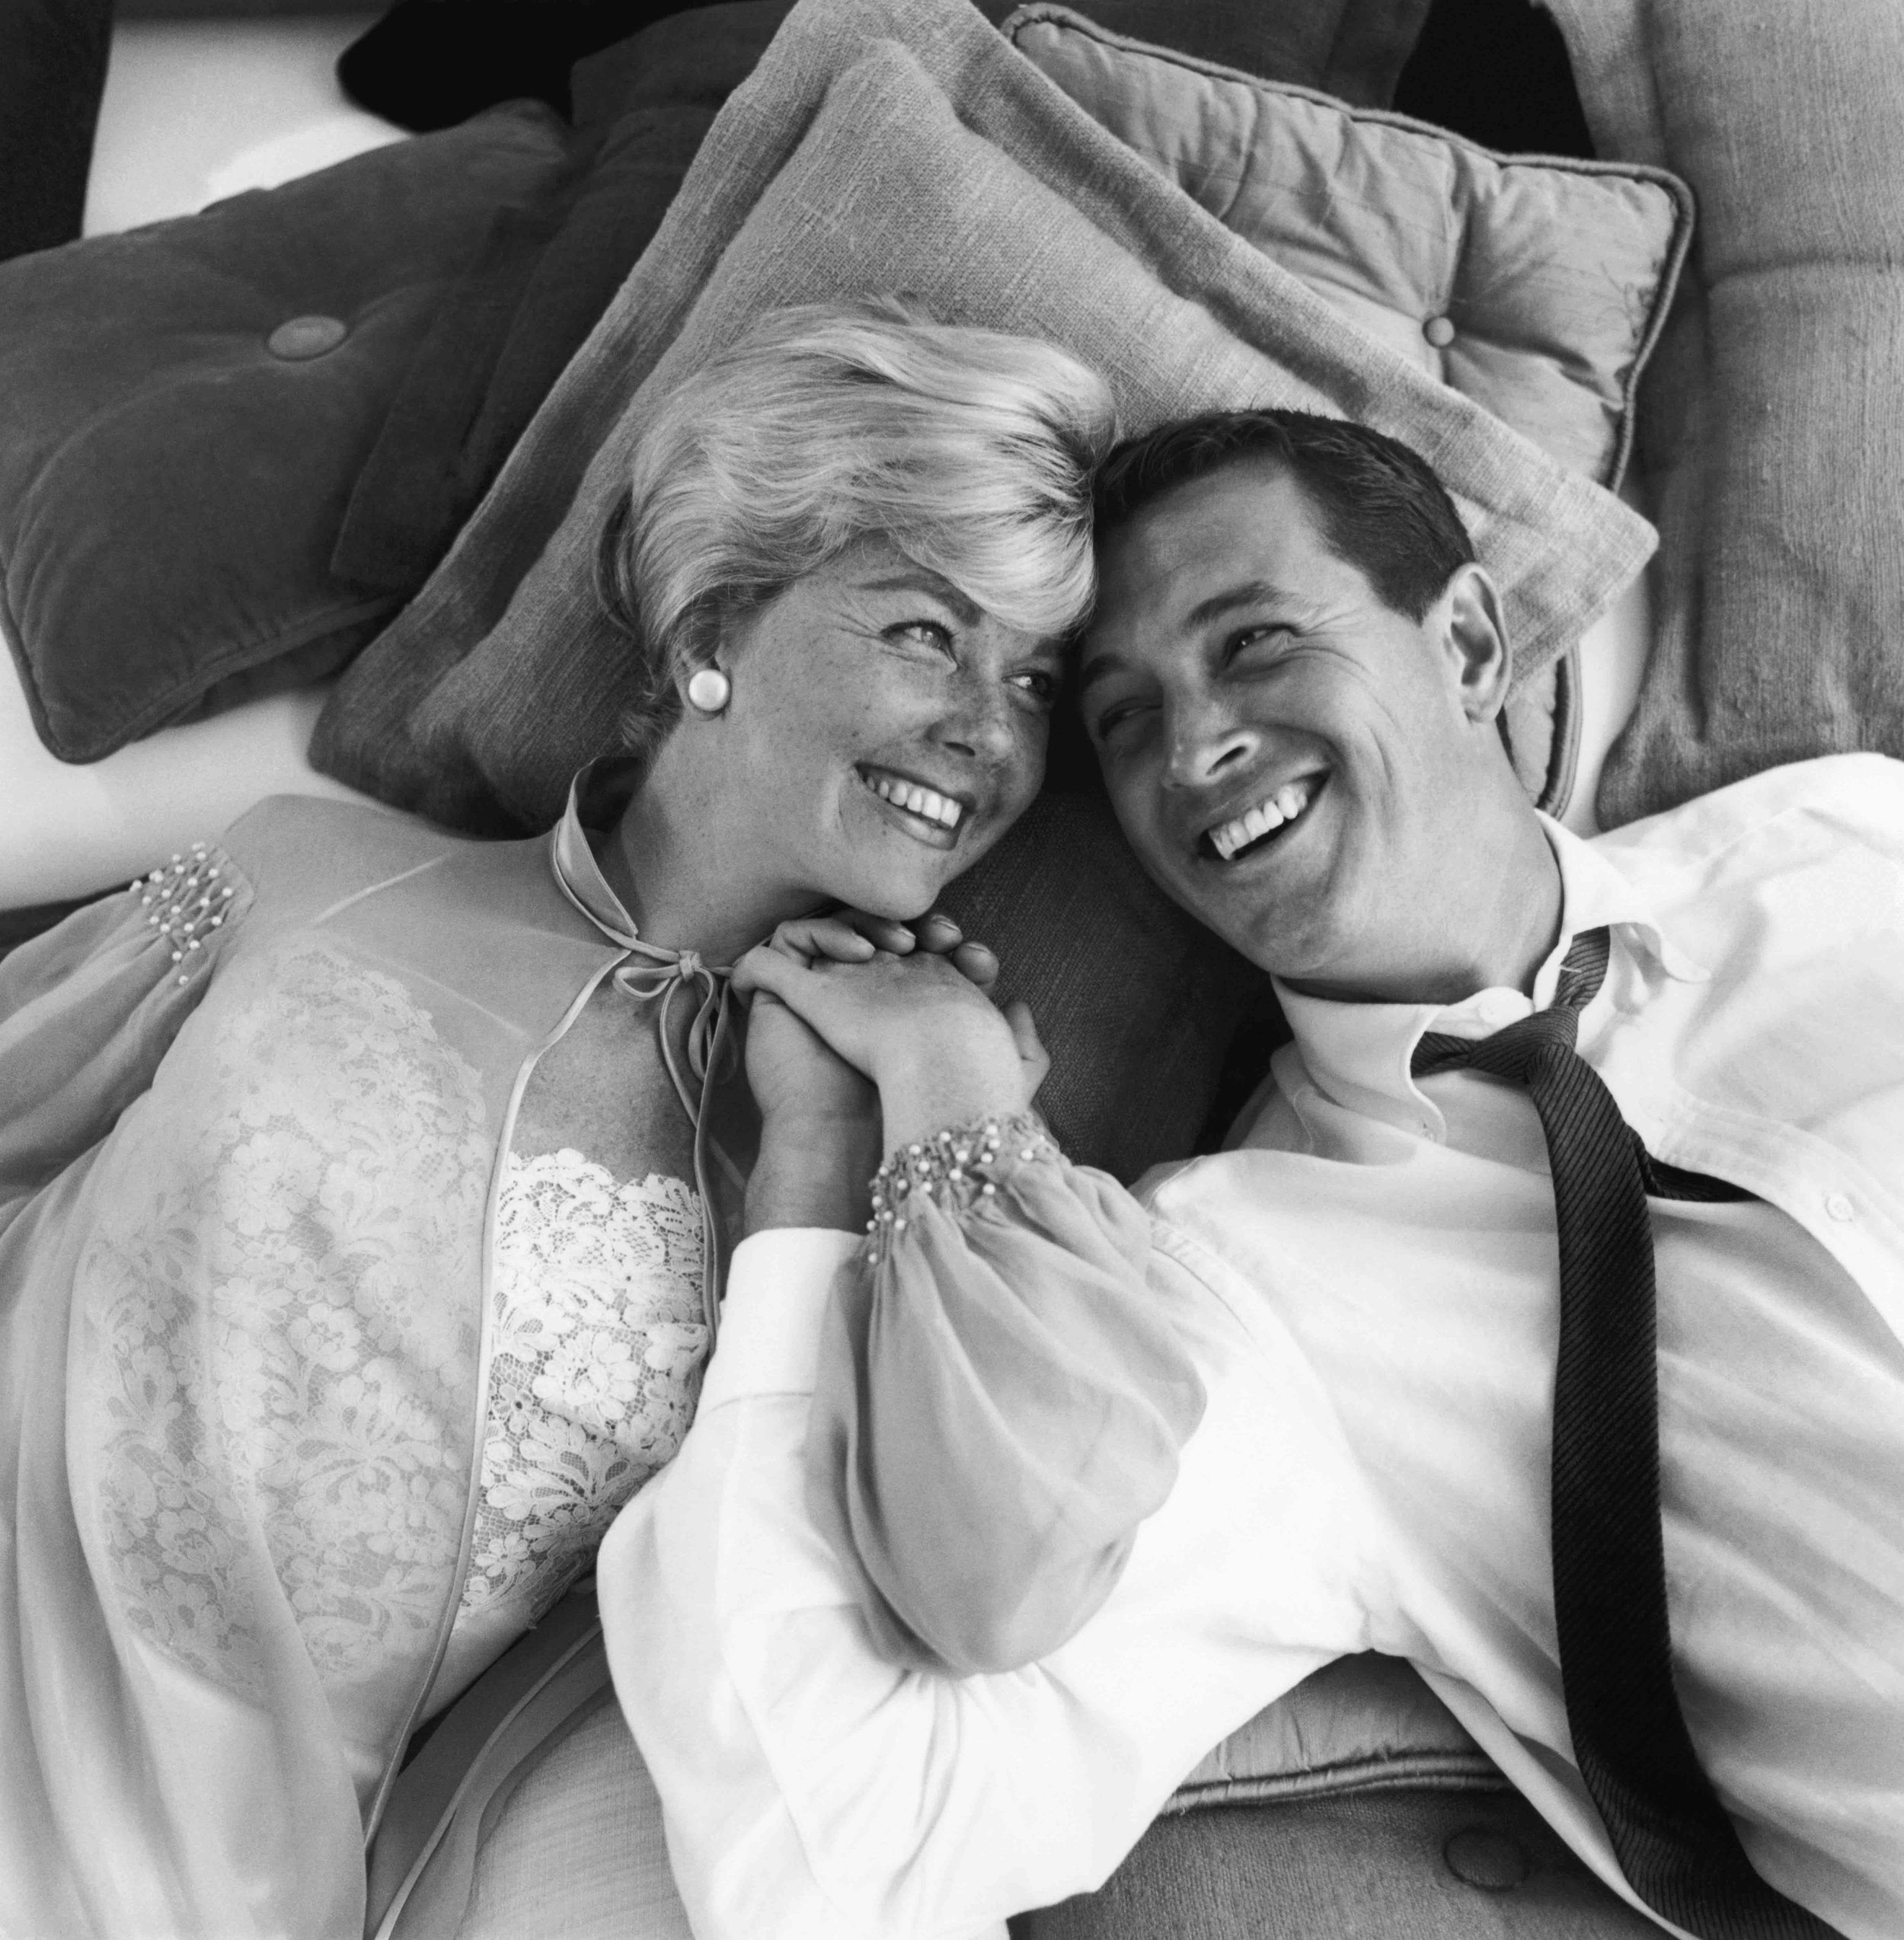 Doris Day & Rock Hudson, 'Pillow Talk', 1959